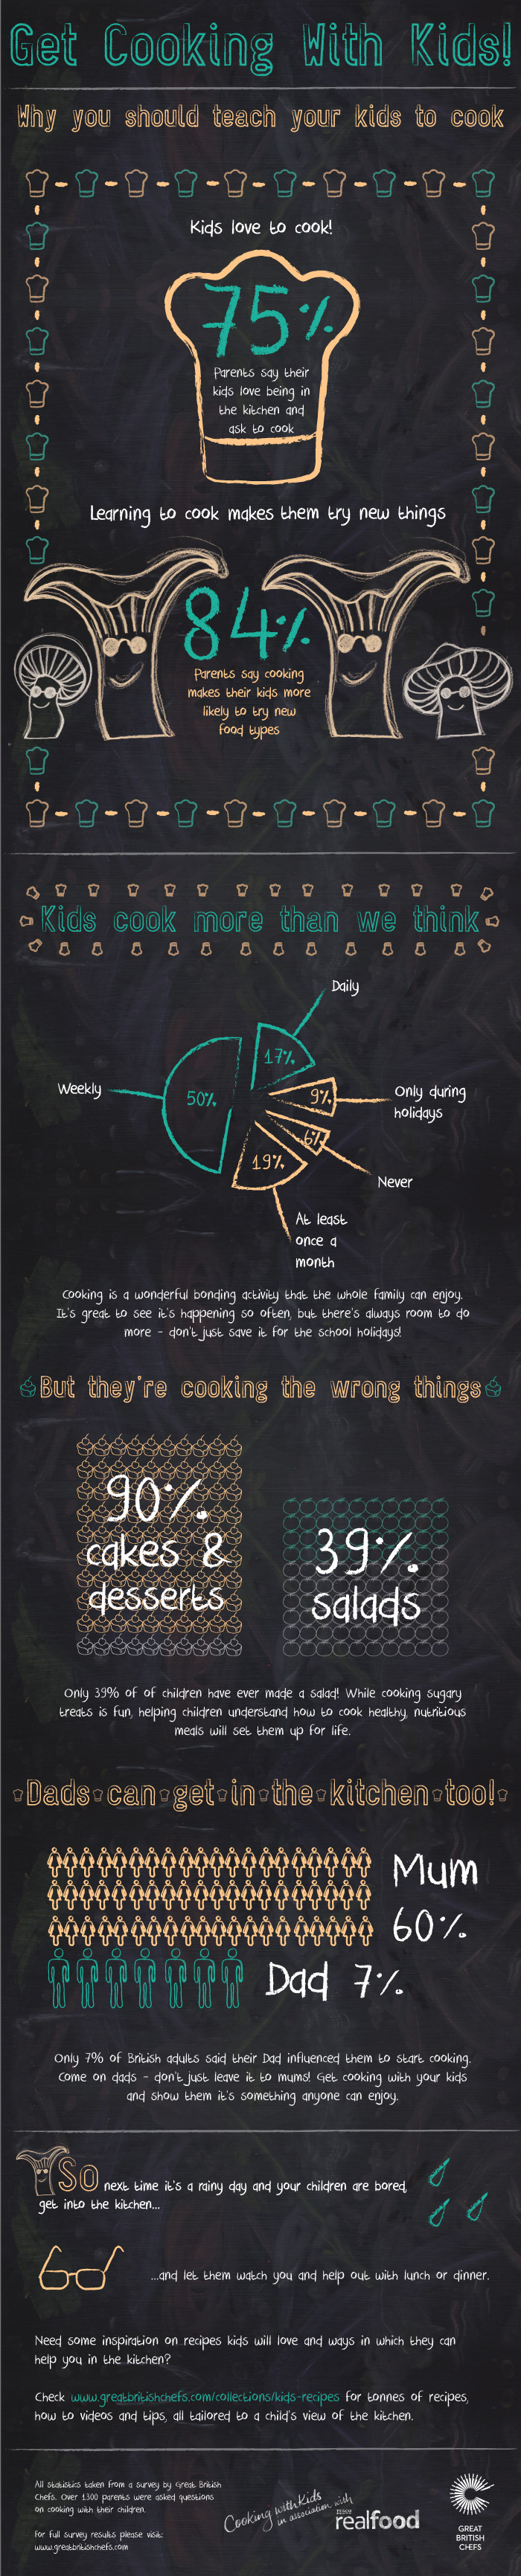 Cooking with Kids -Short-Infographic